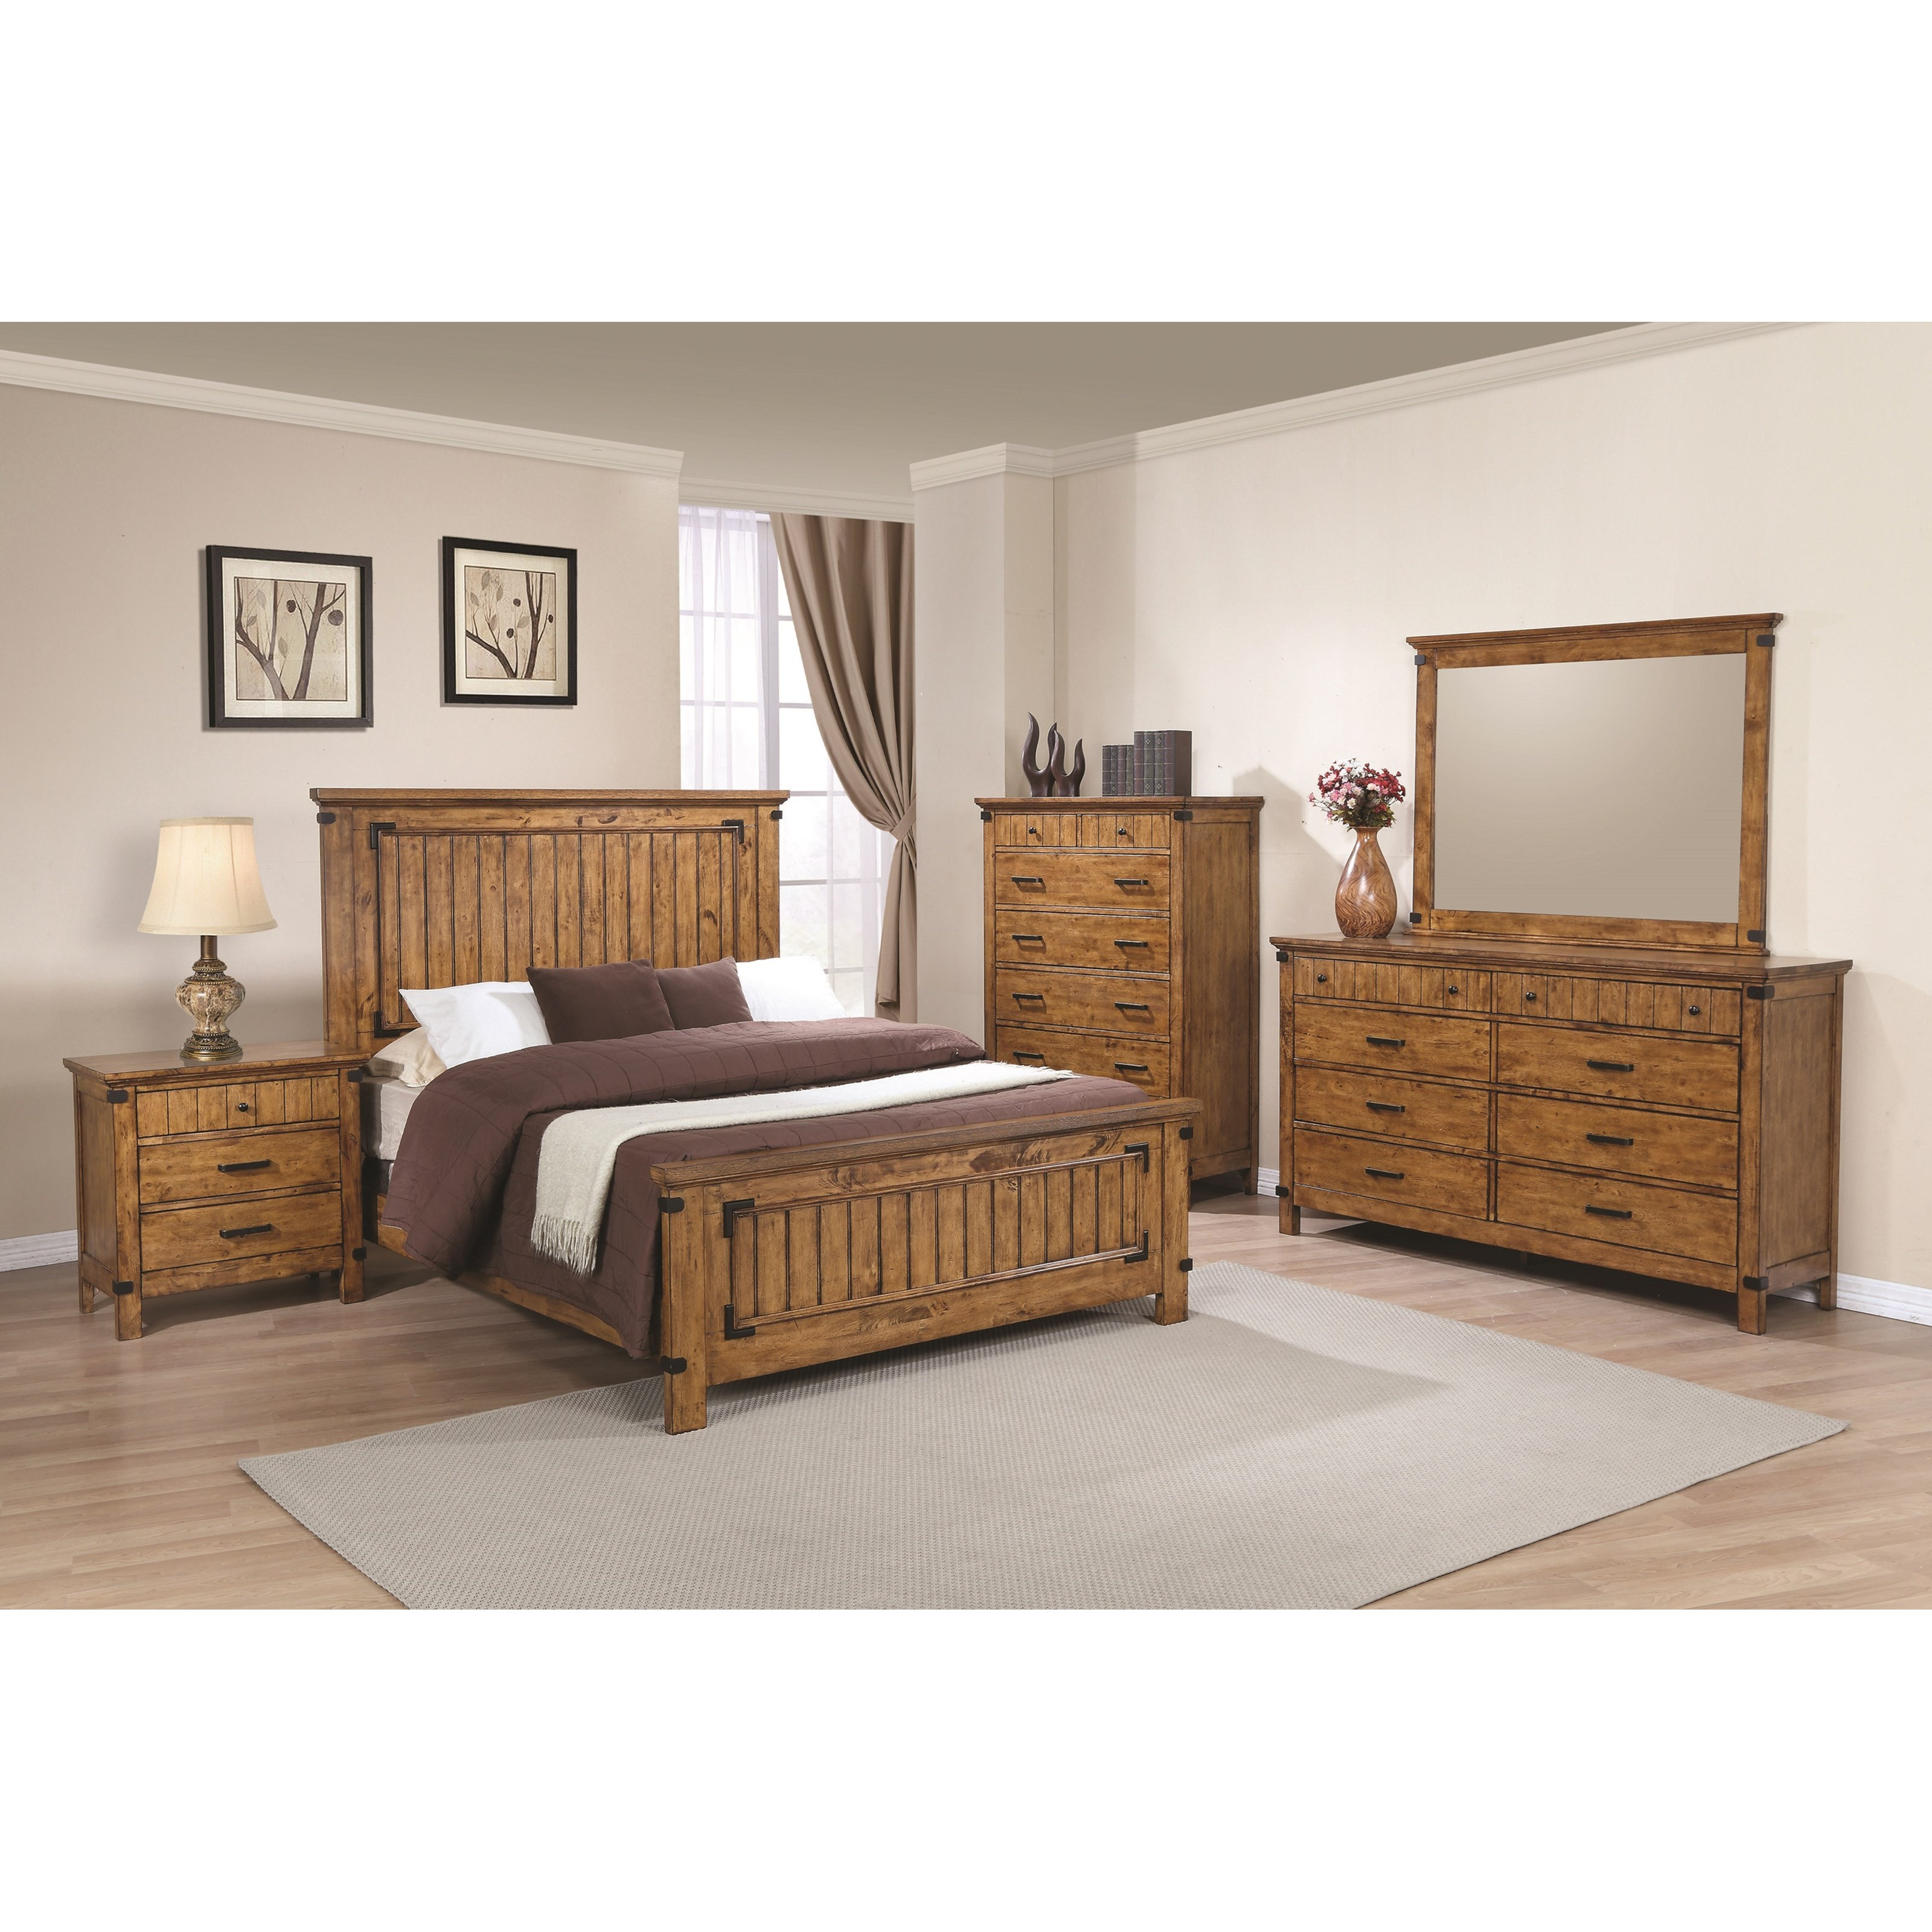 Coaster brenner california king bedroom group dunk for Bedroom furniture groups